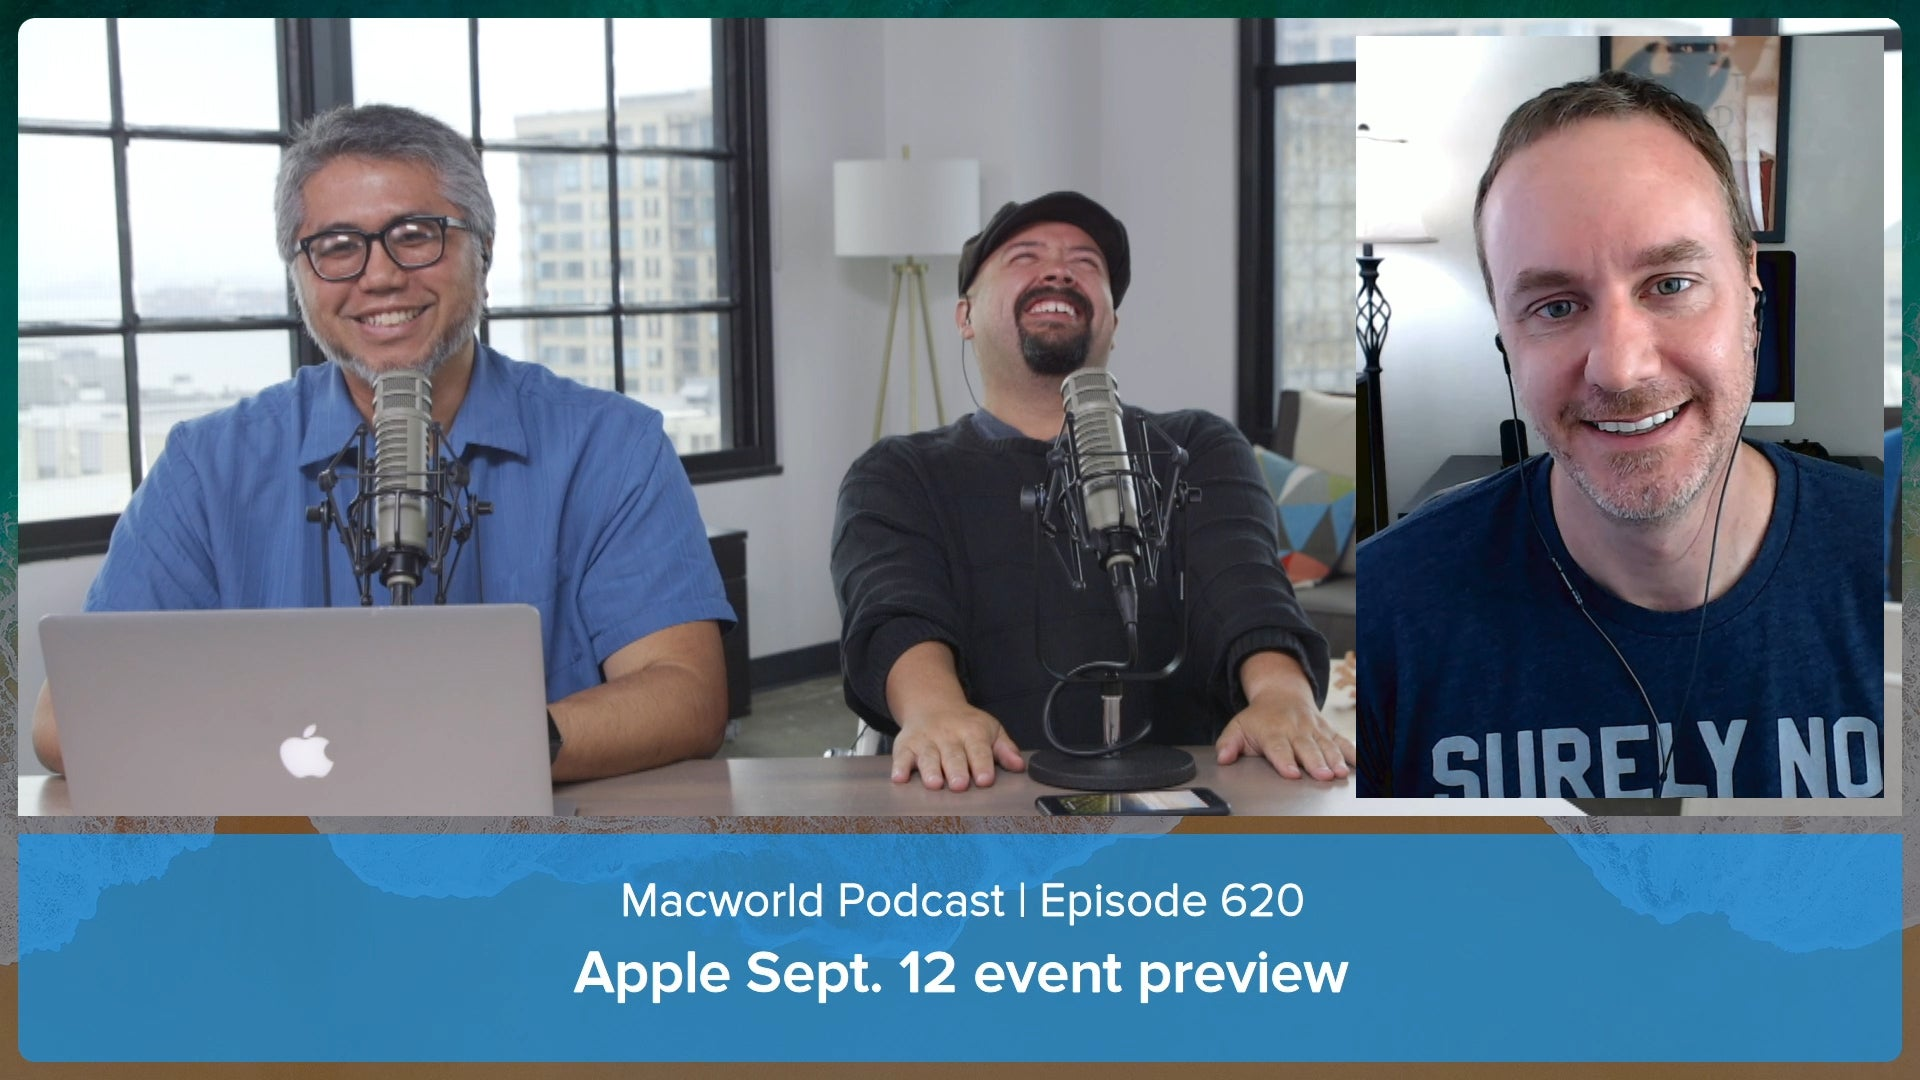 Macworld Podcast 620